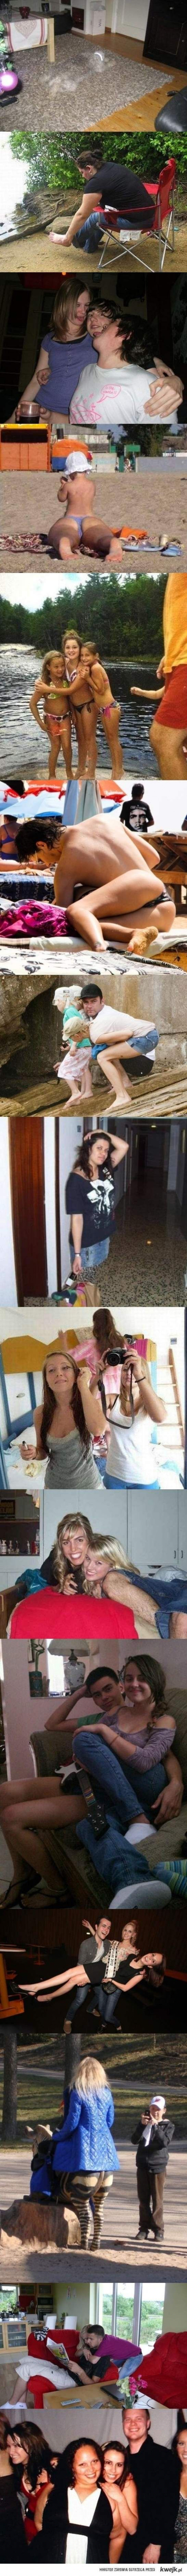 Photos That Don't Appear How They Should